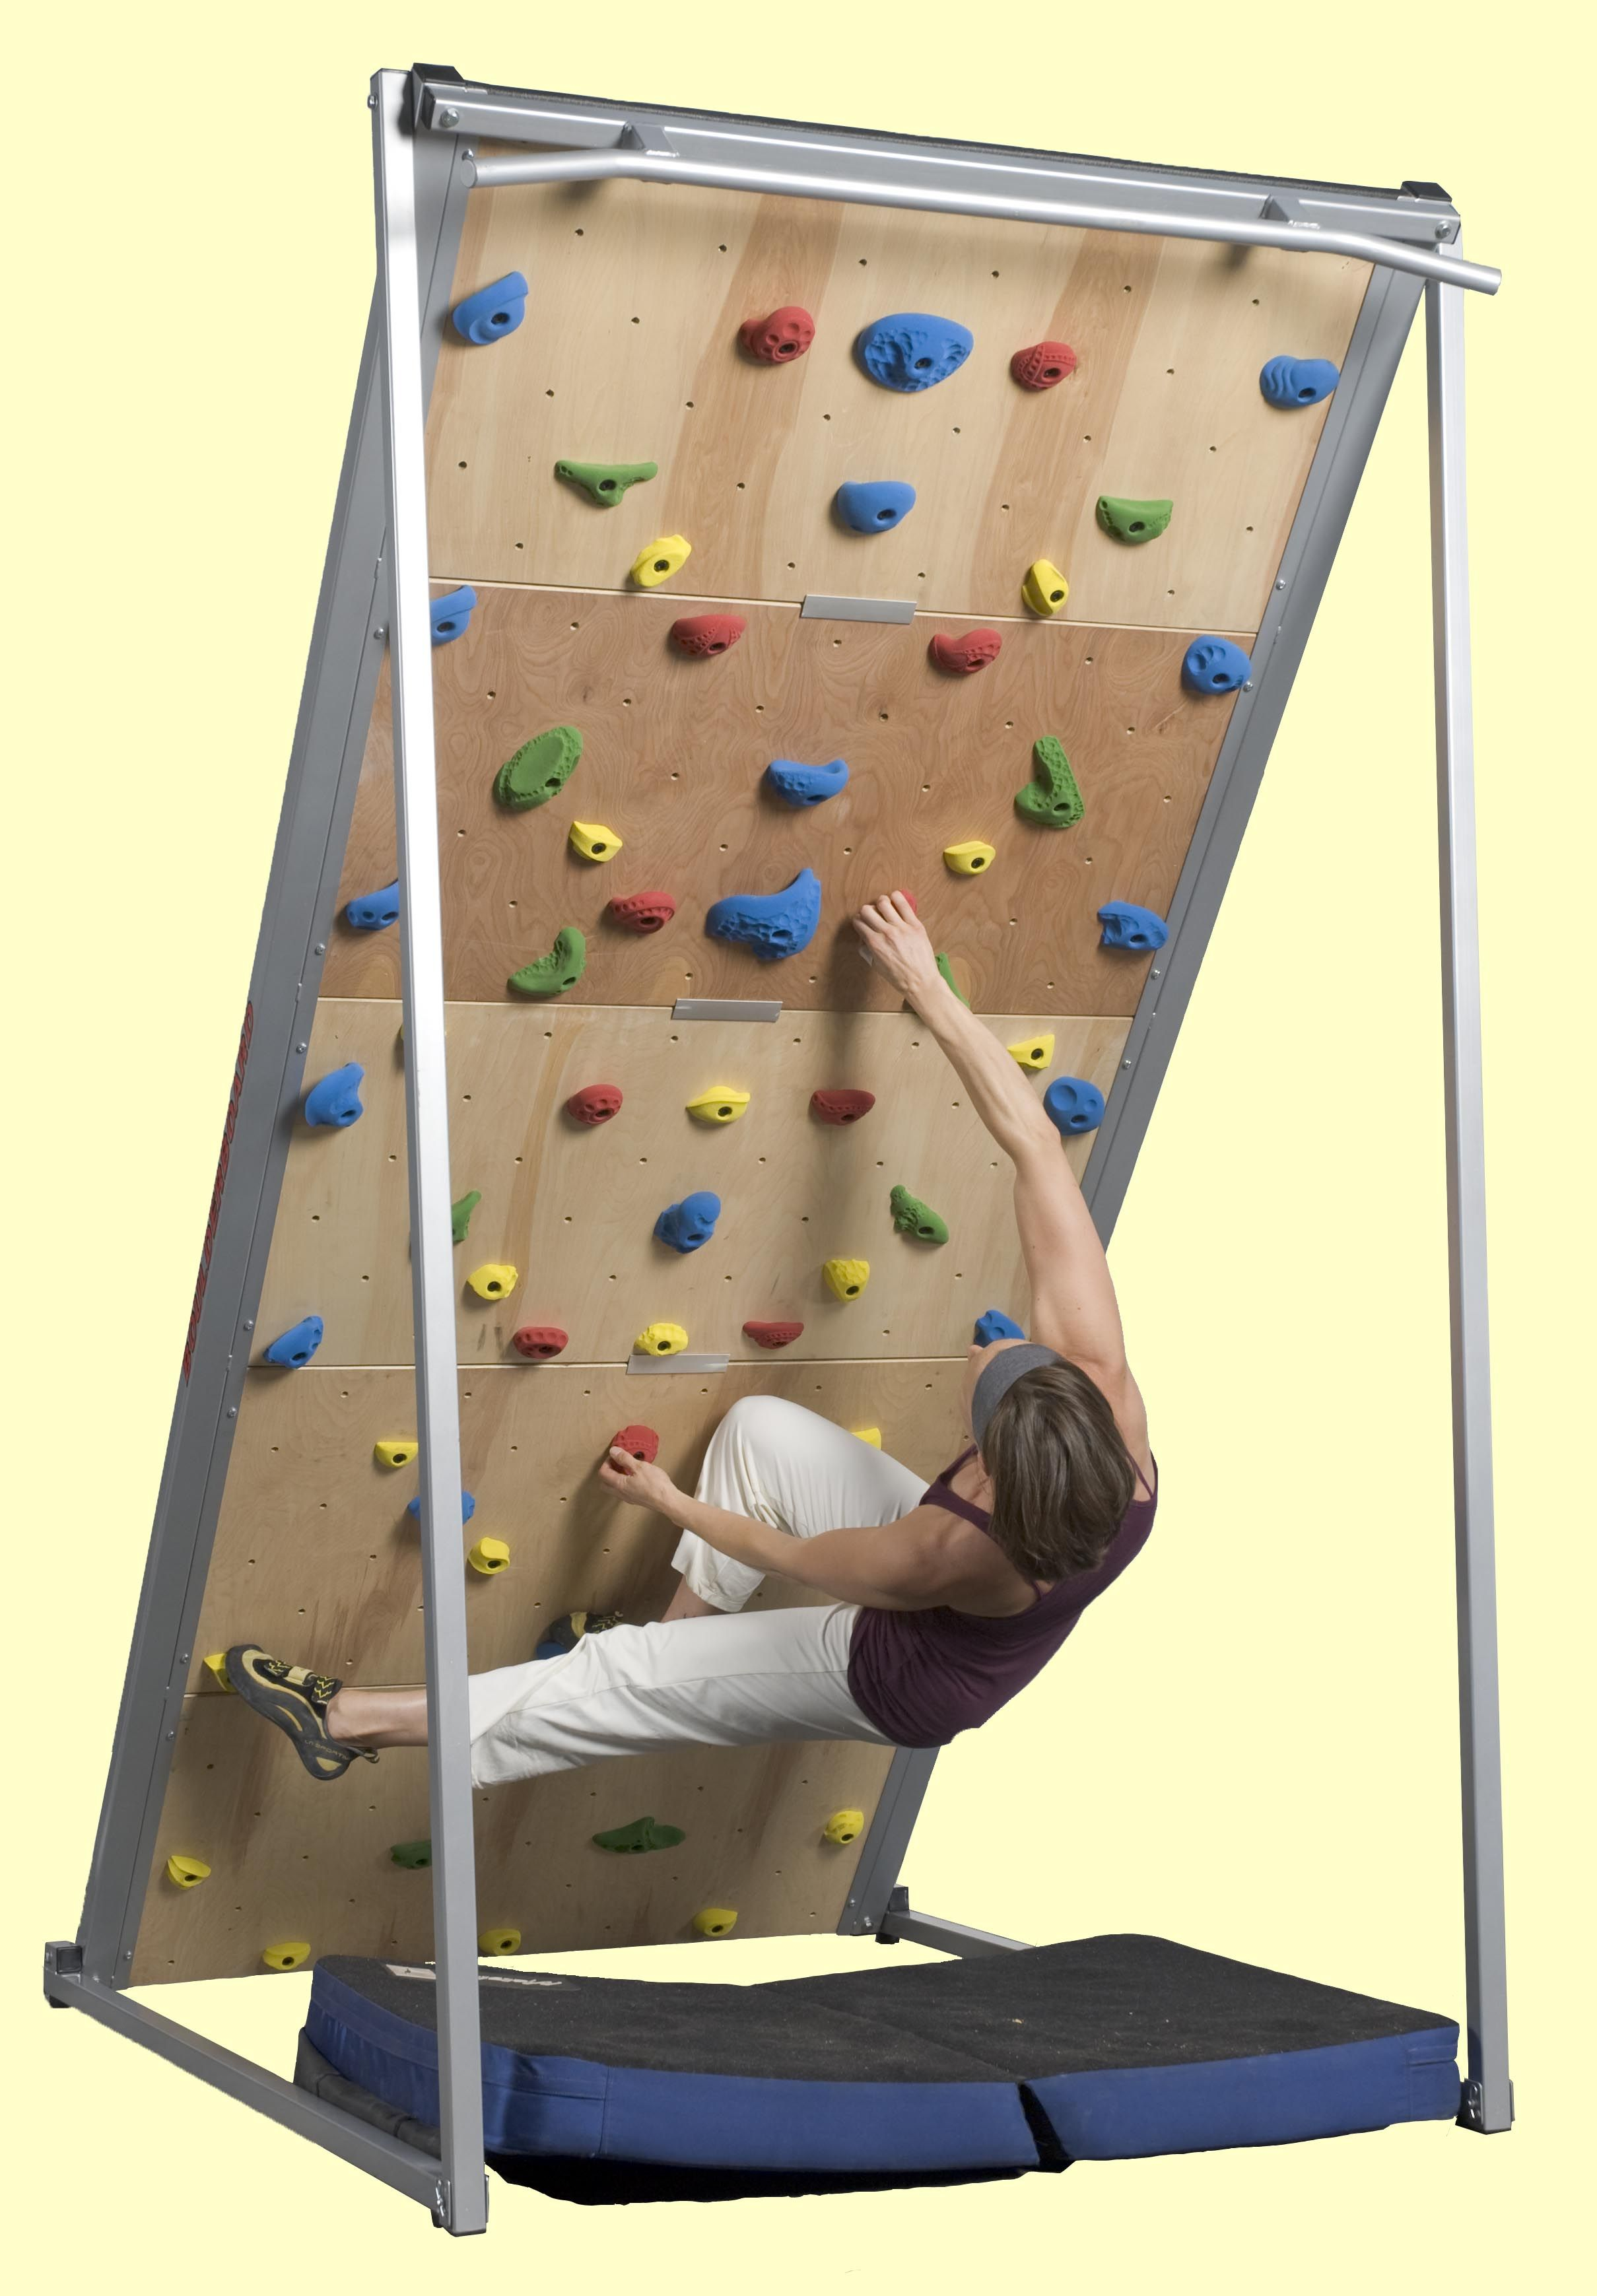 For Those That Like Climbing Try Out The Endless Indoor Climbing Systems From Brewers Ledge For Me Diy Climbing Wall Rock Climbing Wall Home Climbing Wall